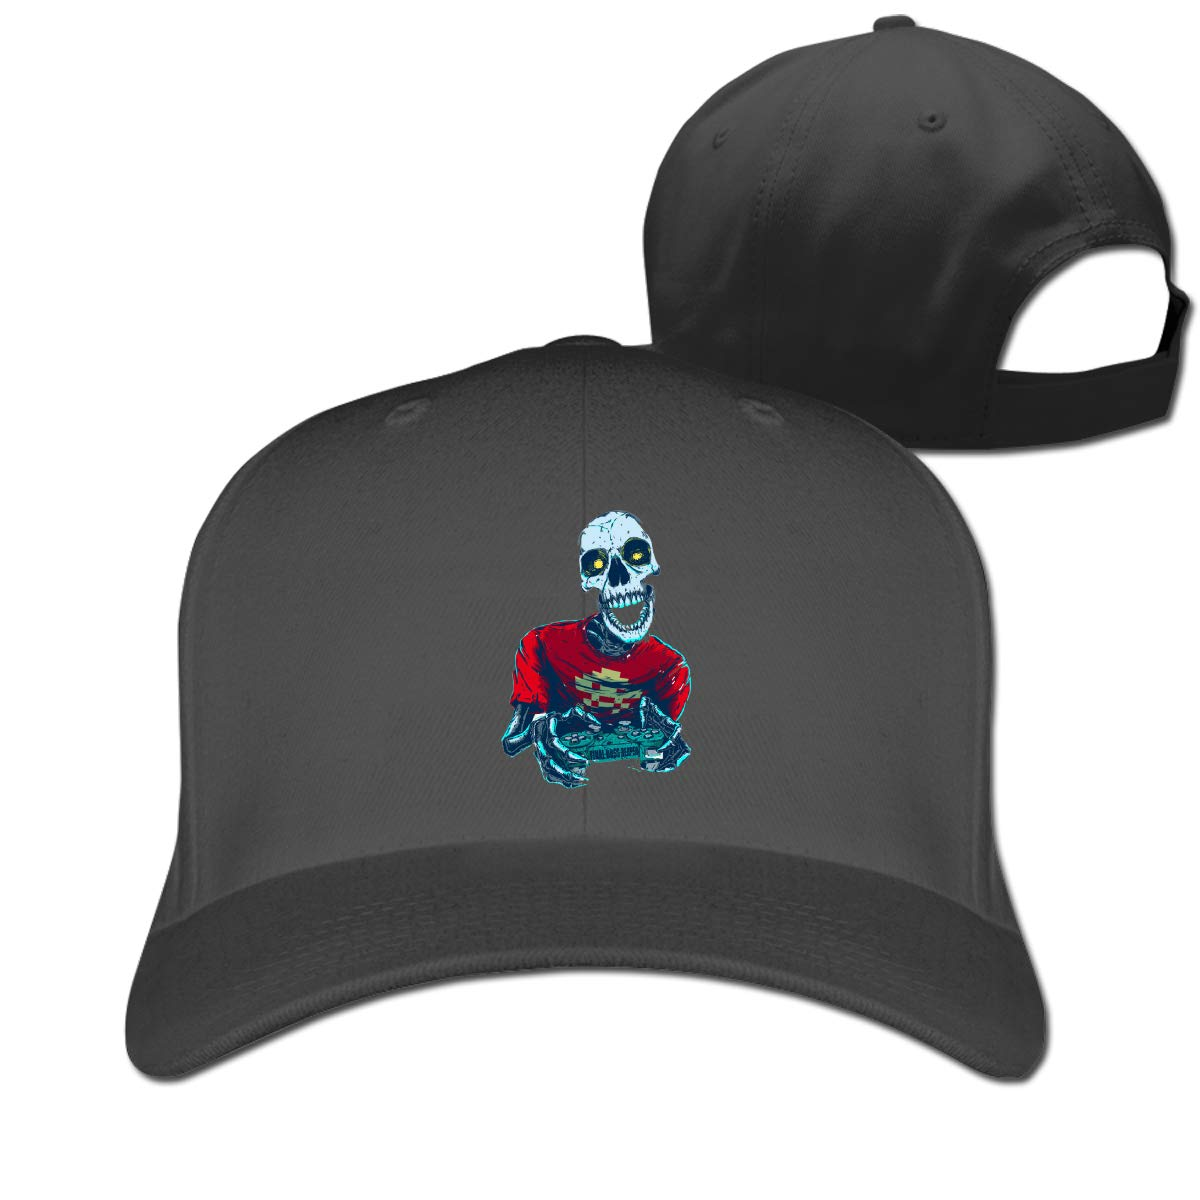 Funny Skull Game Classic Adjustable Cotton Baseball Caps Trucker Driver Hat Outdoor Cap Fitted Hats Dad Hat Black